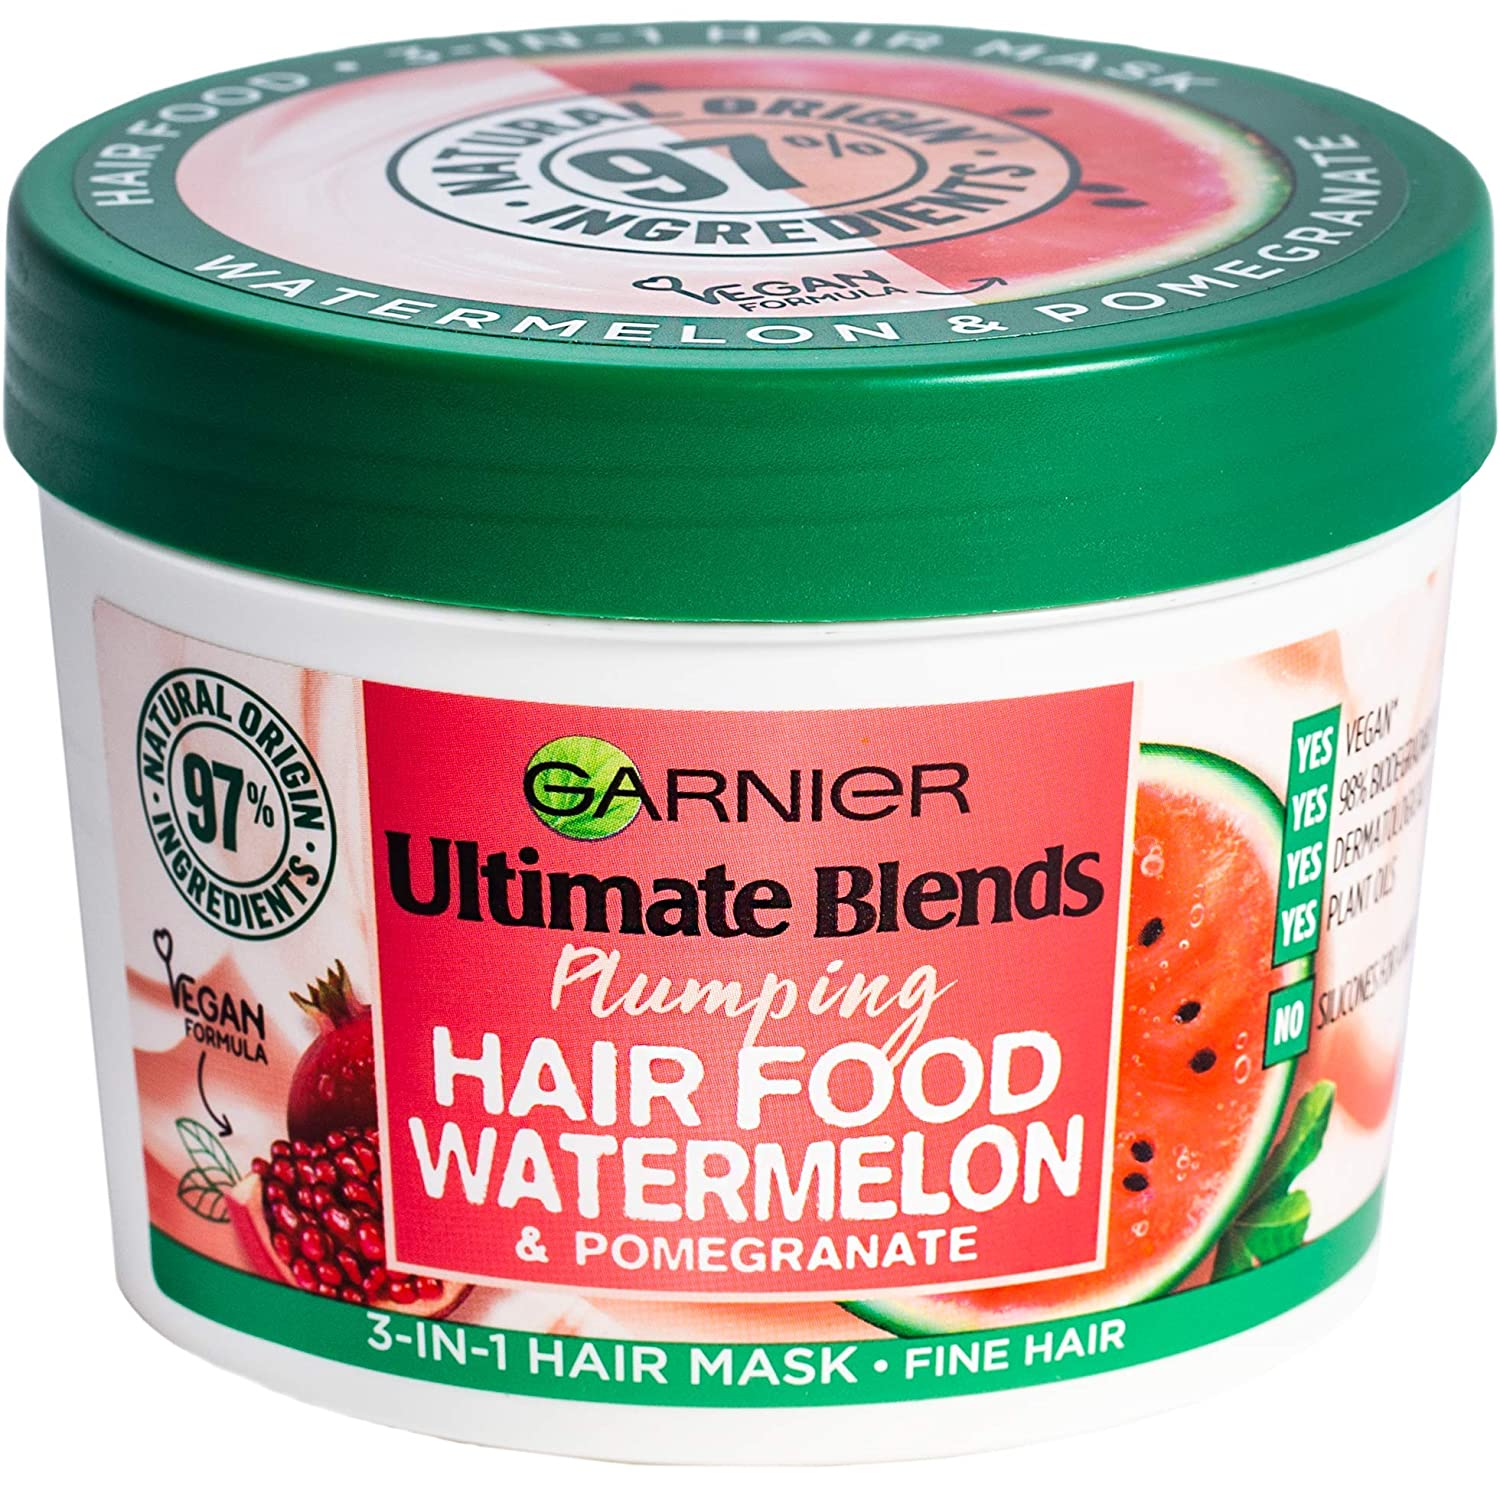 Garnier Ultimate Blends Plumping Hair Food Watermelon 3-In-1 Fine Hair Mask Treatment 390Ml